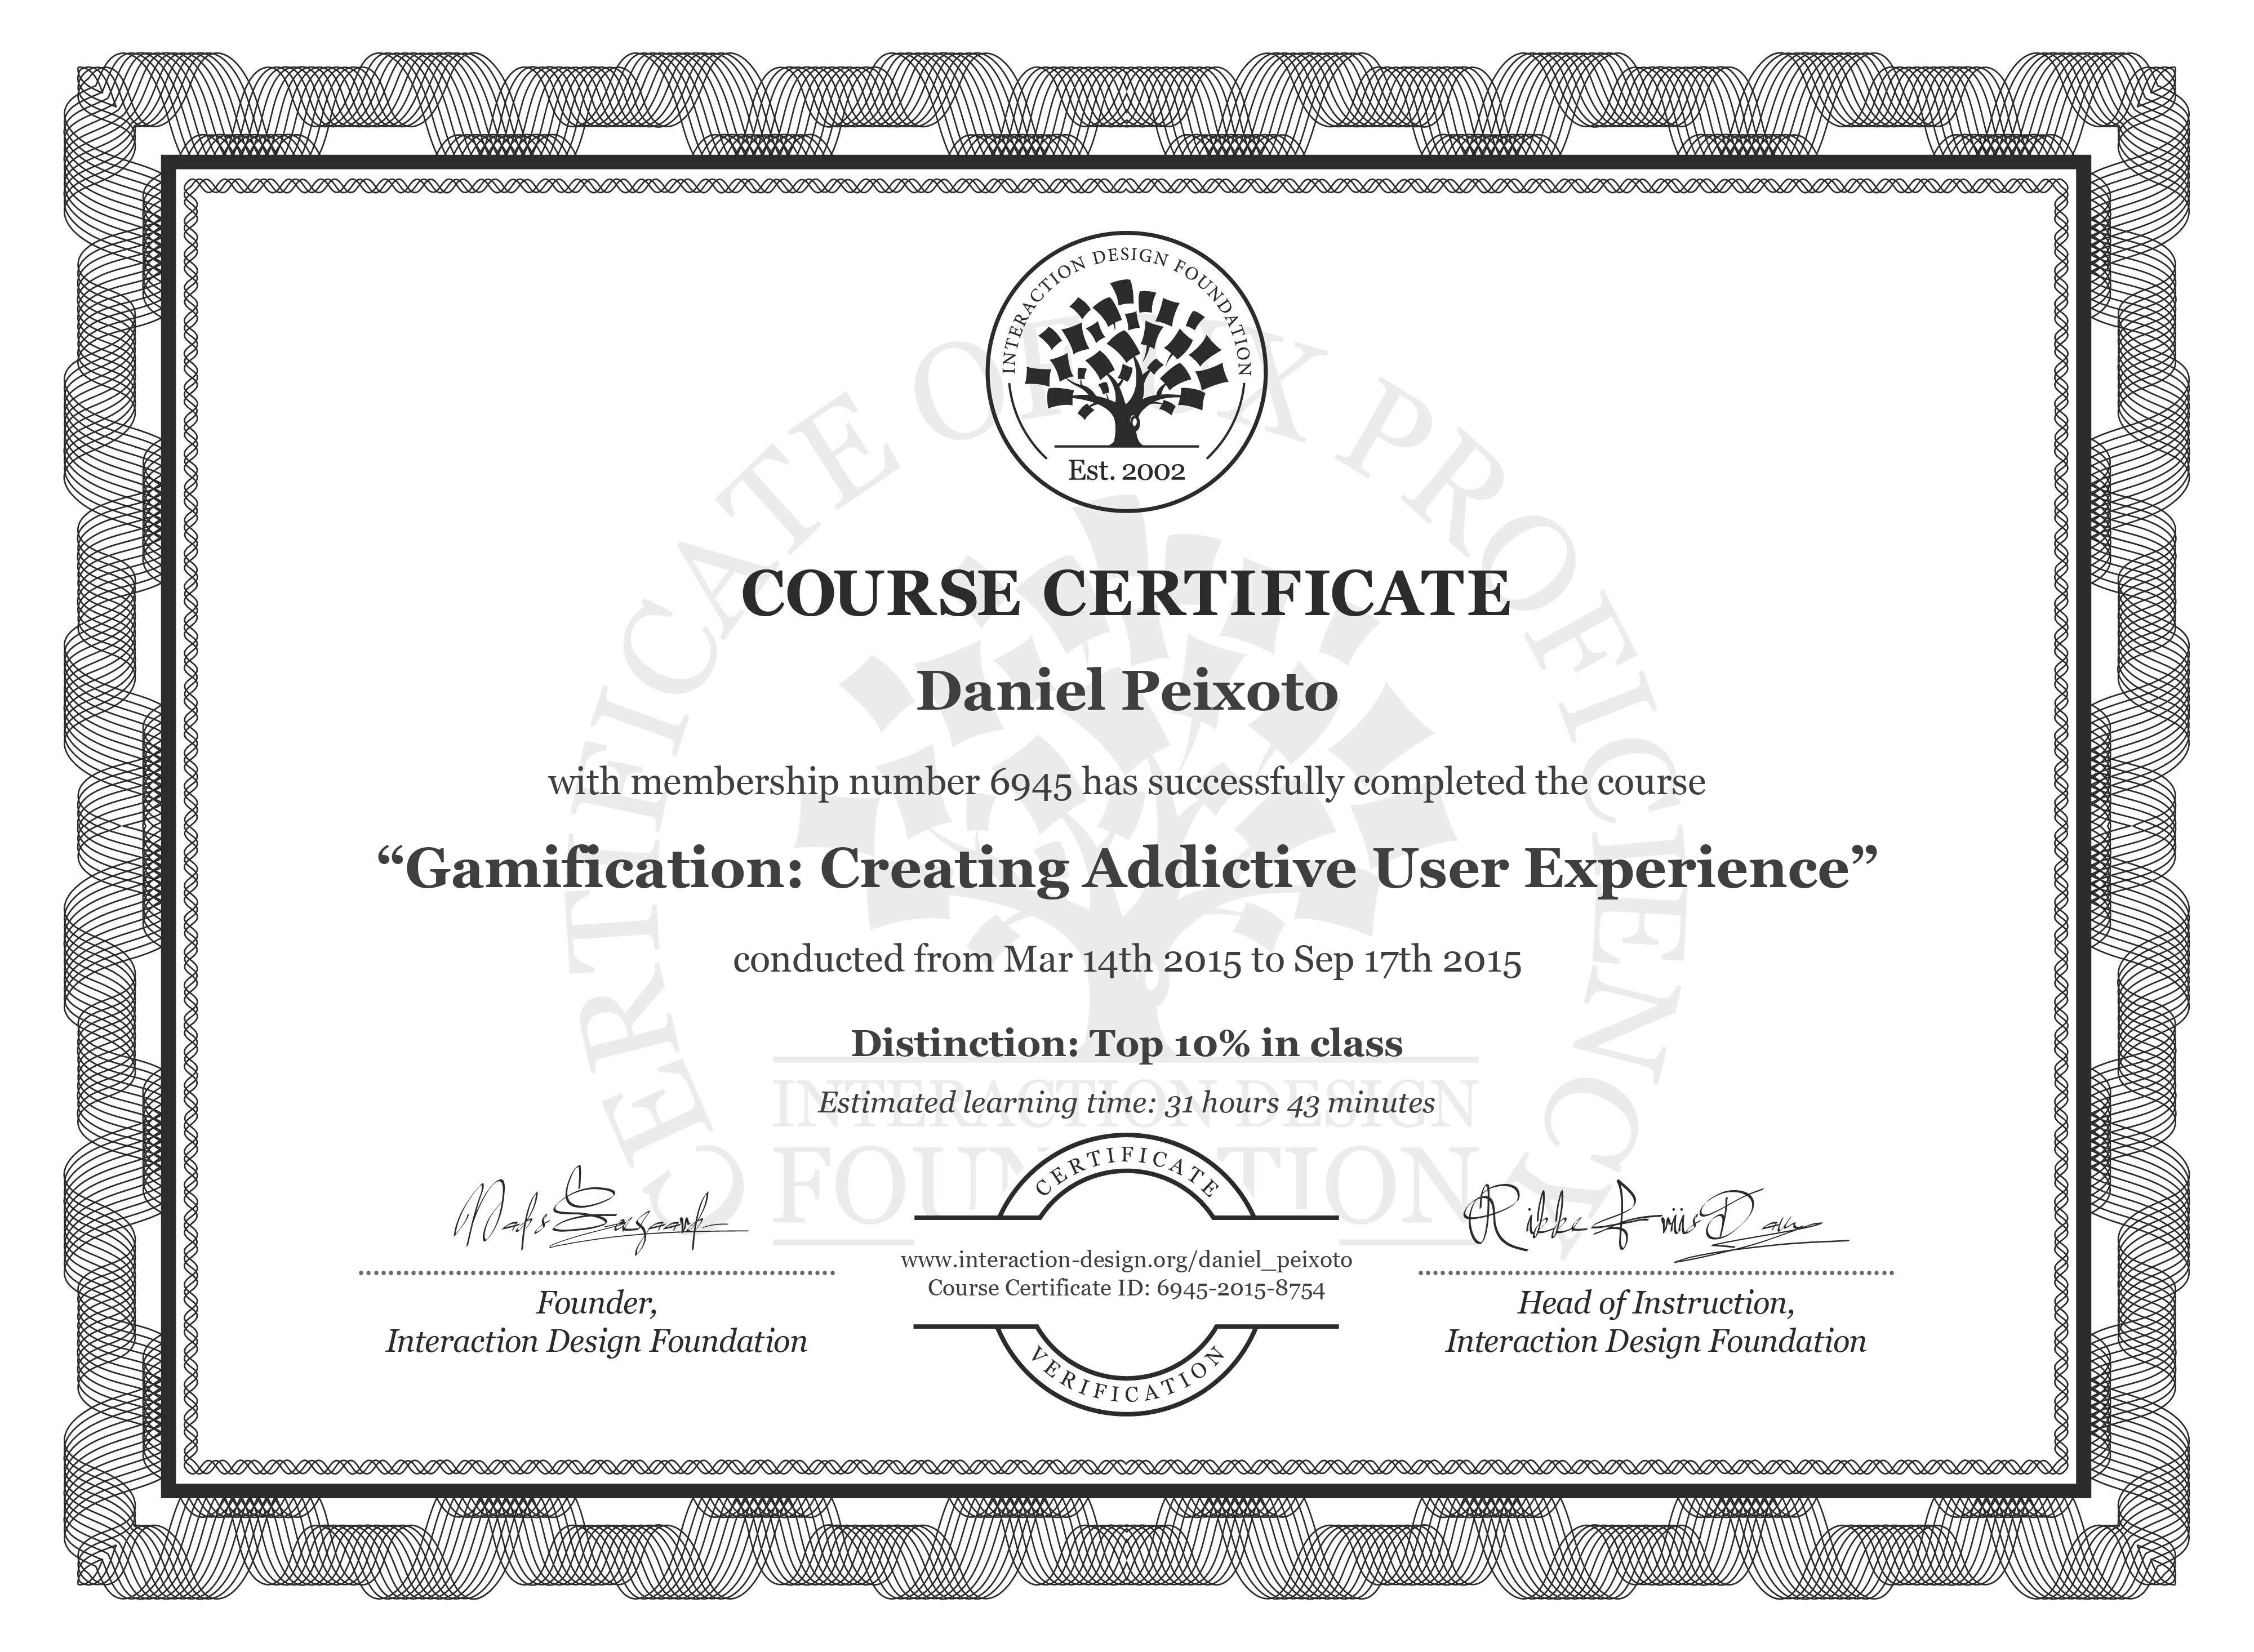 Daniel Peixoto's Course Certificate: Gamification: Creating Addictive User Experience